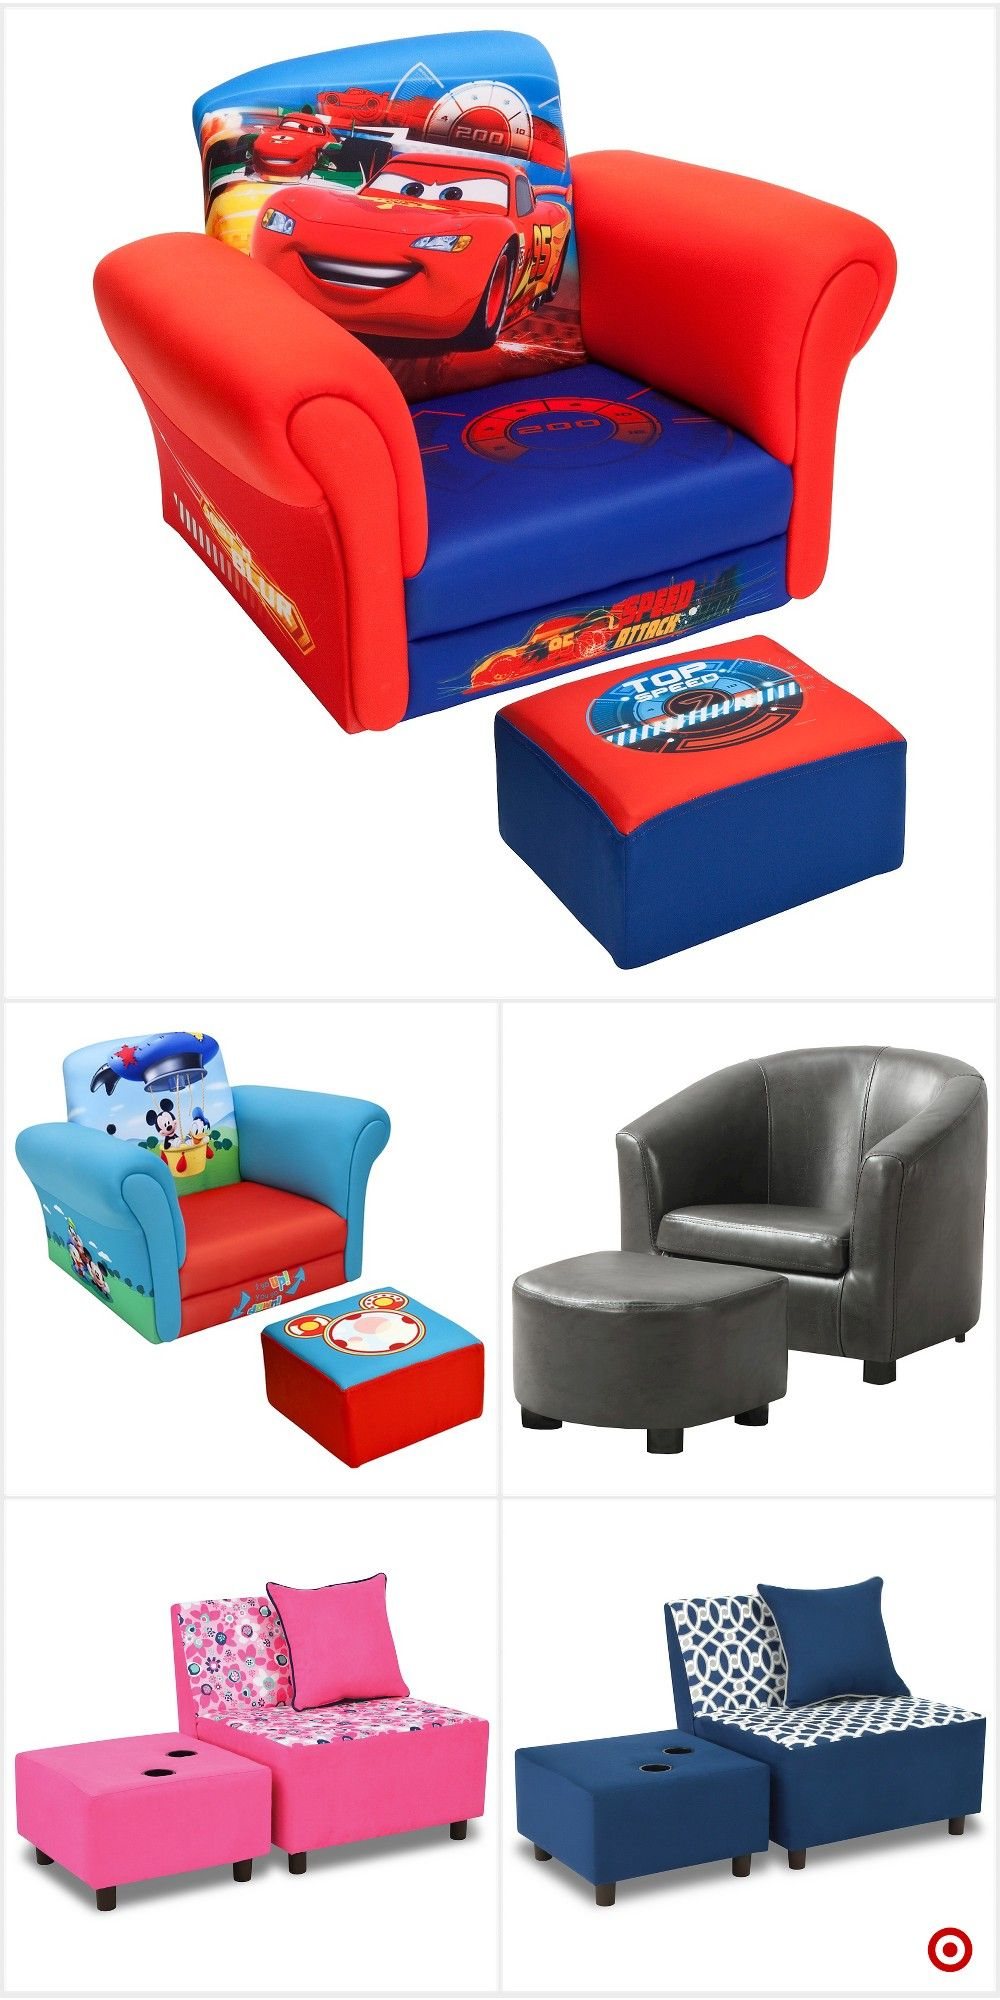 Shop Target for kids upholstered chair and ottoman set you